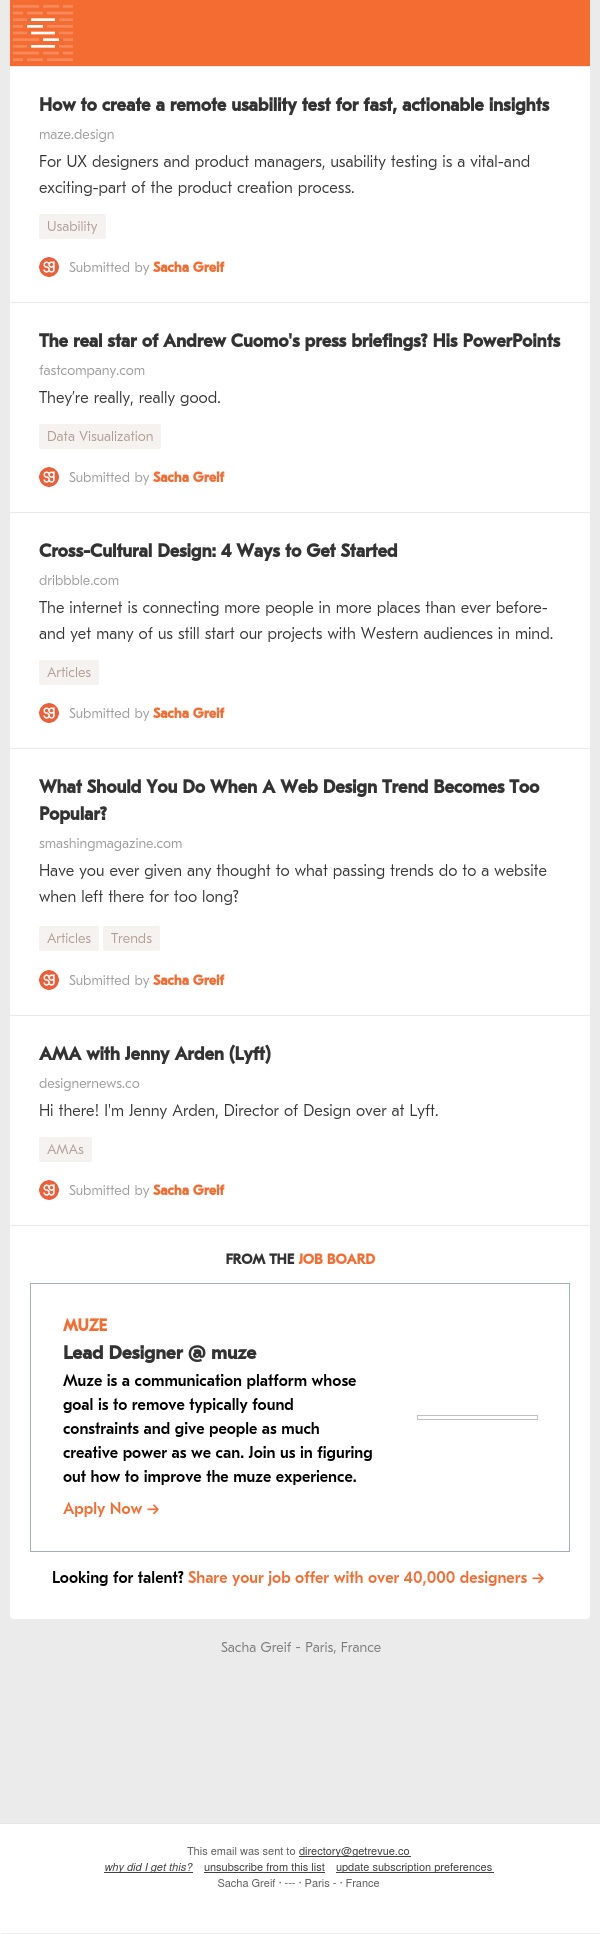 Usability Test, Cuomo PowerPoints, Cross-Cultural Design, Too Popular, Jenny Arden AMA